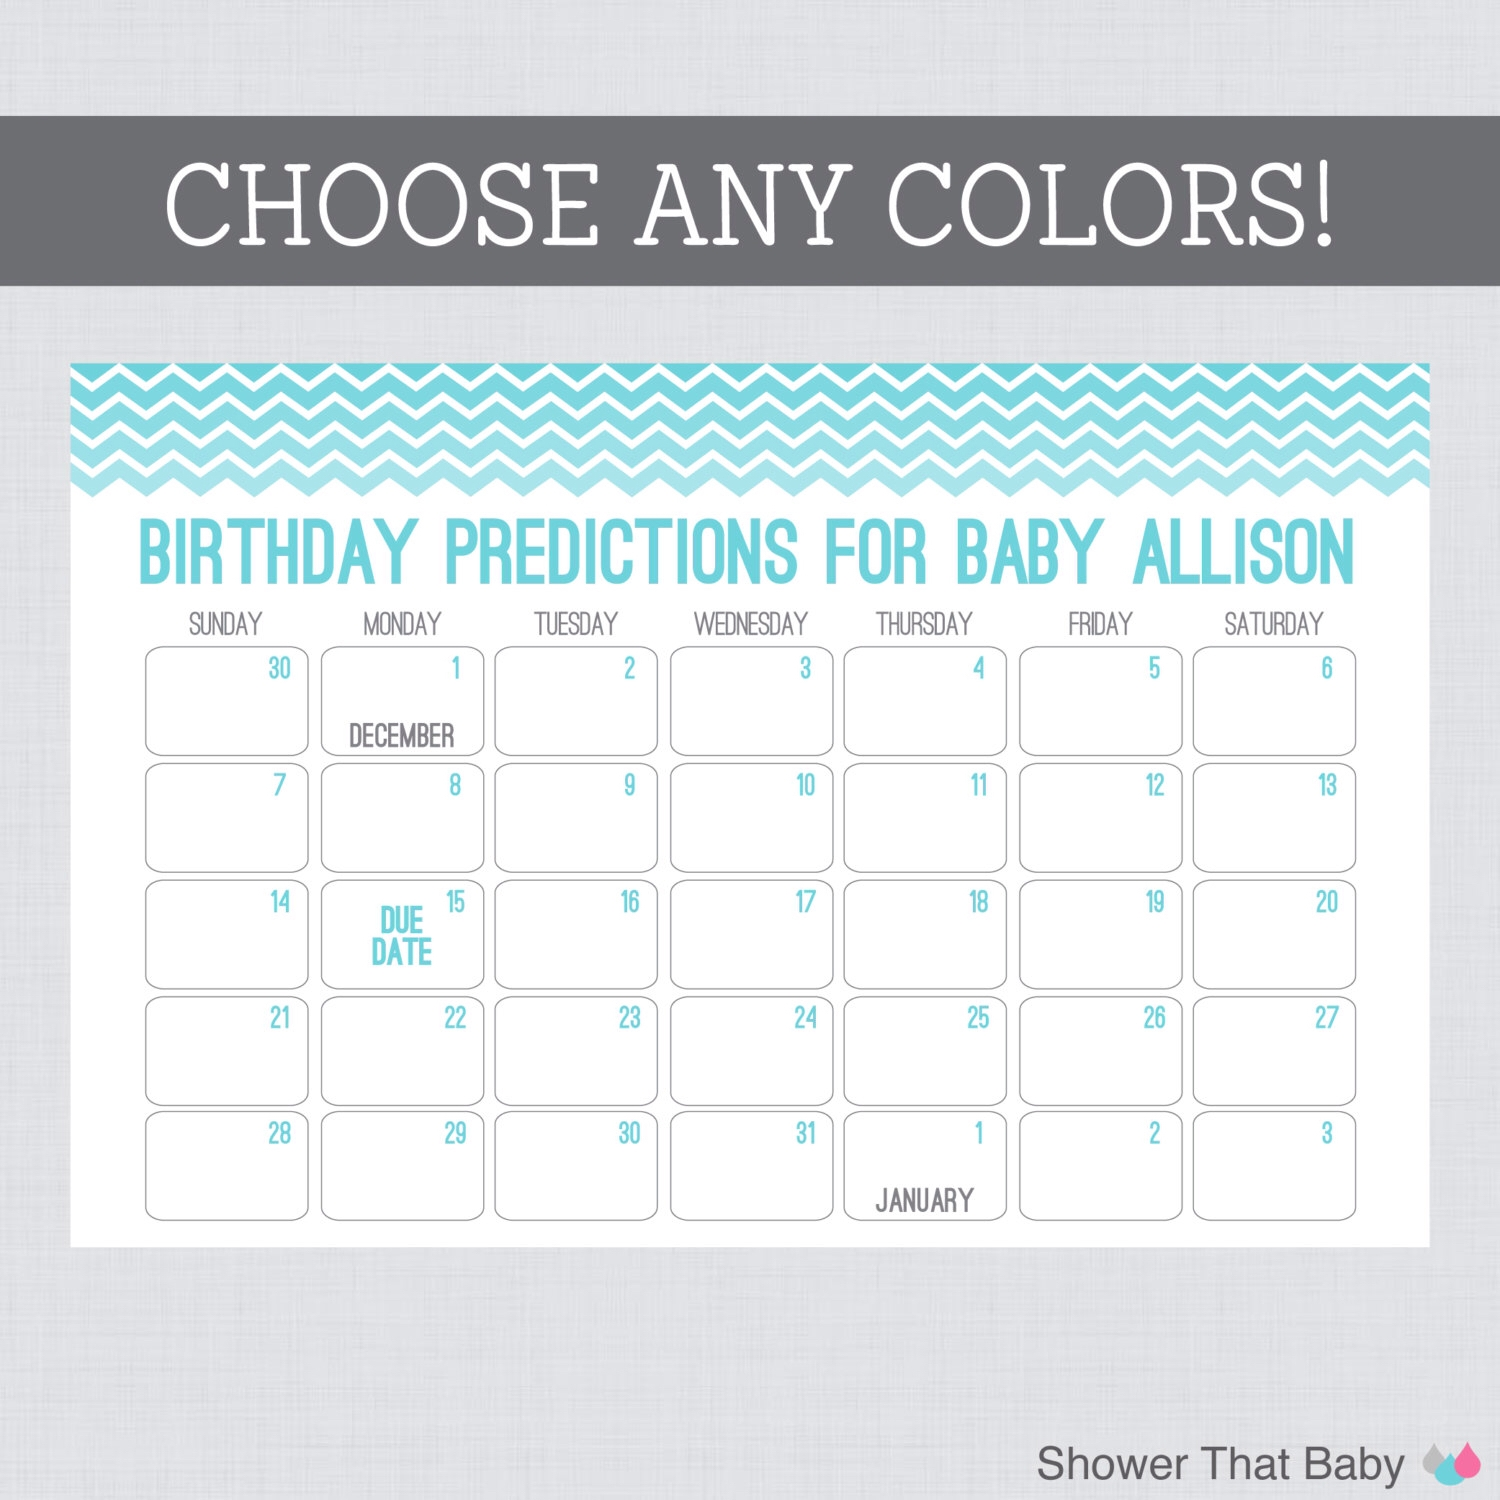 Ba Birthday Predictions Printable Chevron Ba Shower Calendar3abry